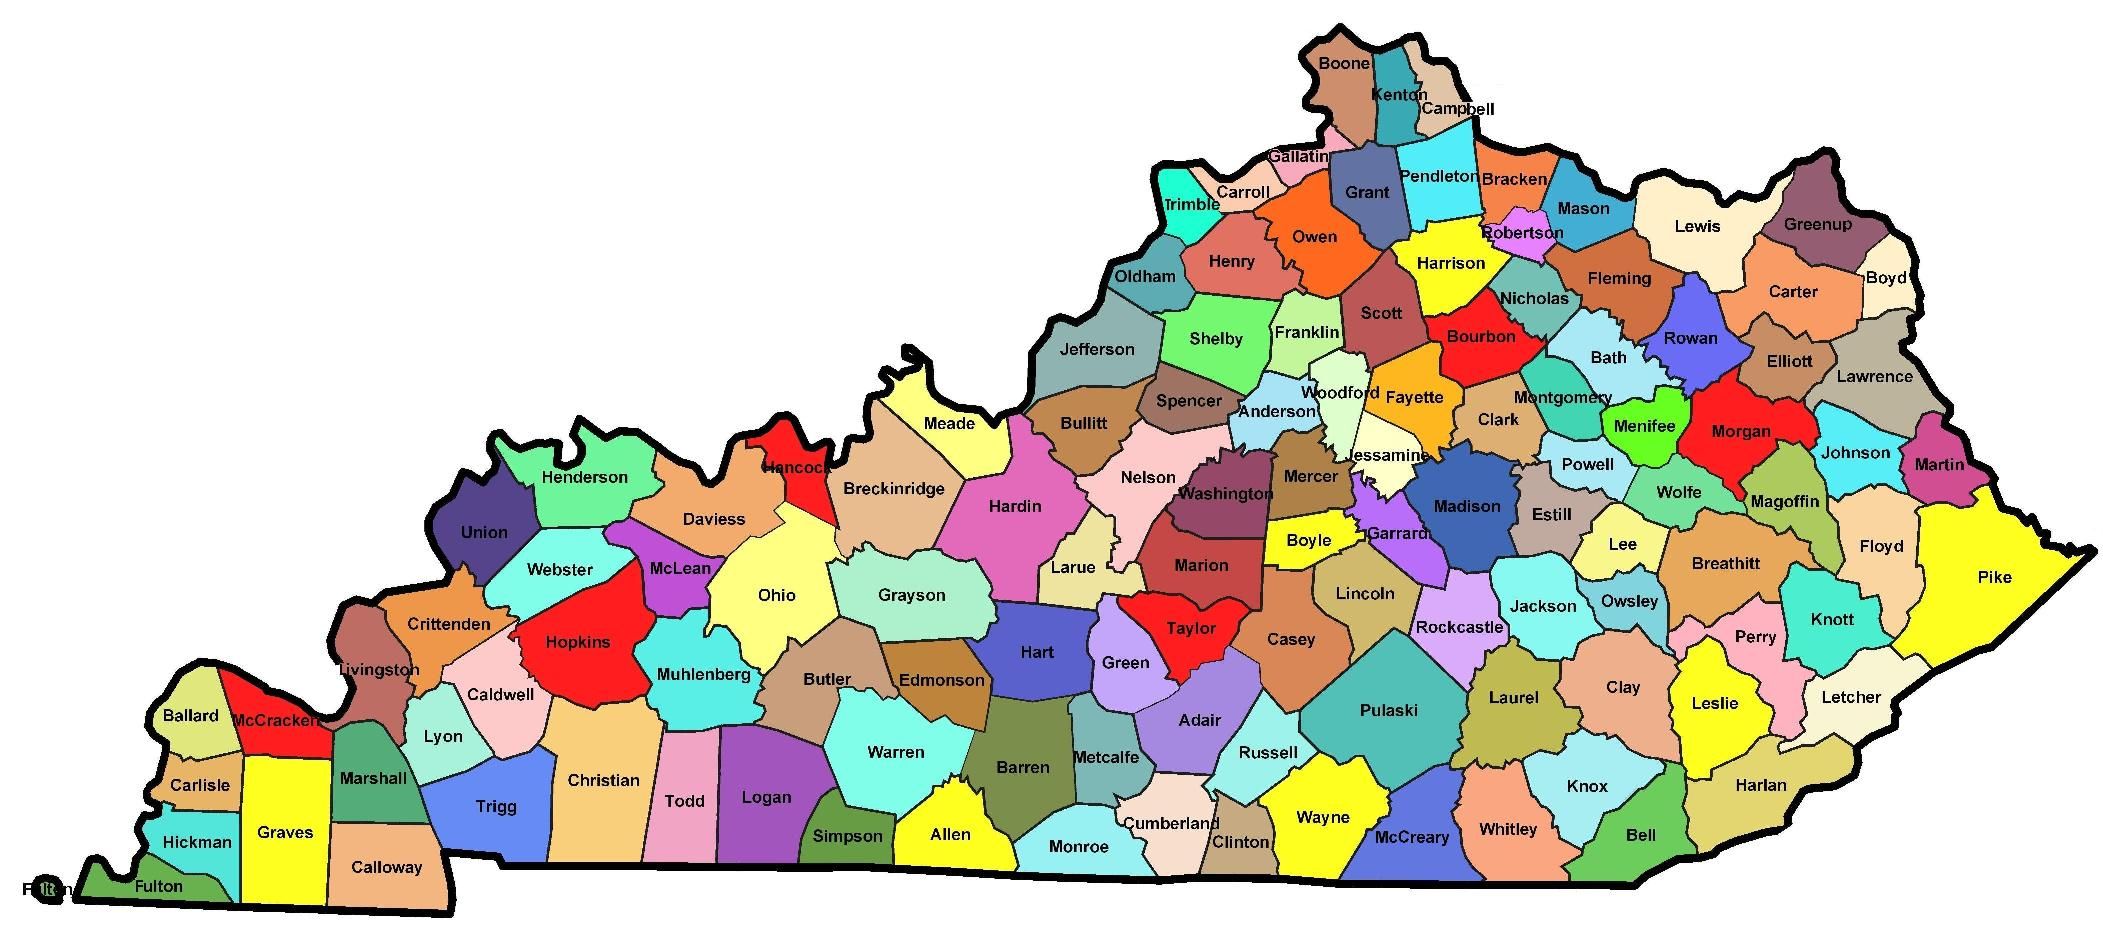 ohio map counties with Circuit Clerks on Circuit Clerks further Indiana further Wyoming also Us map furthermore File Map of Butler County  Pennsylvania.